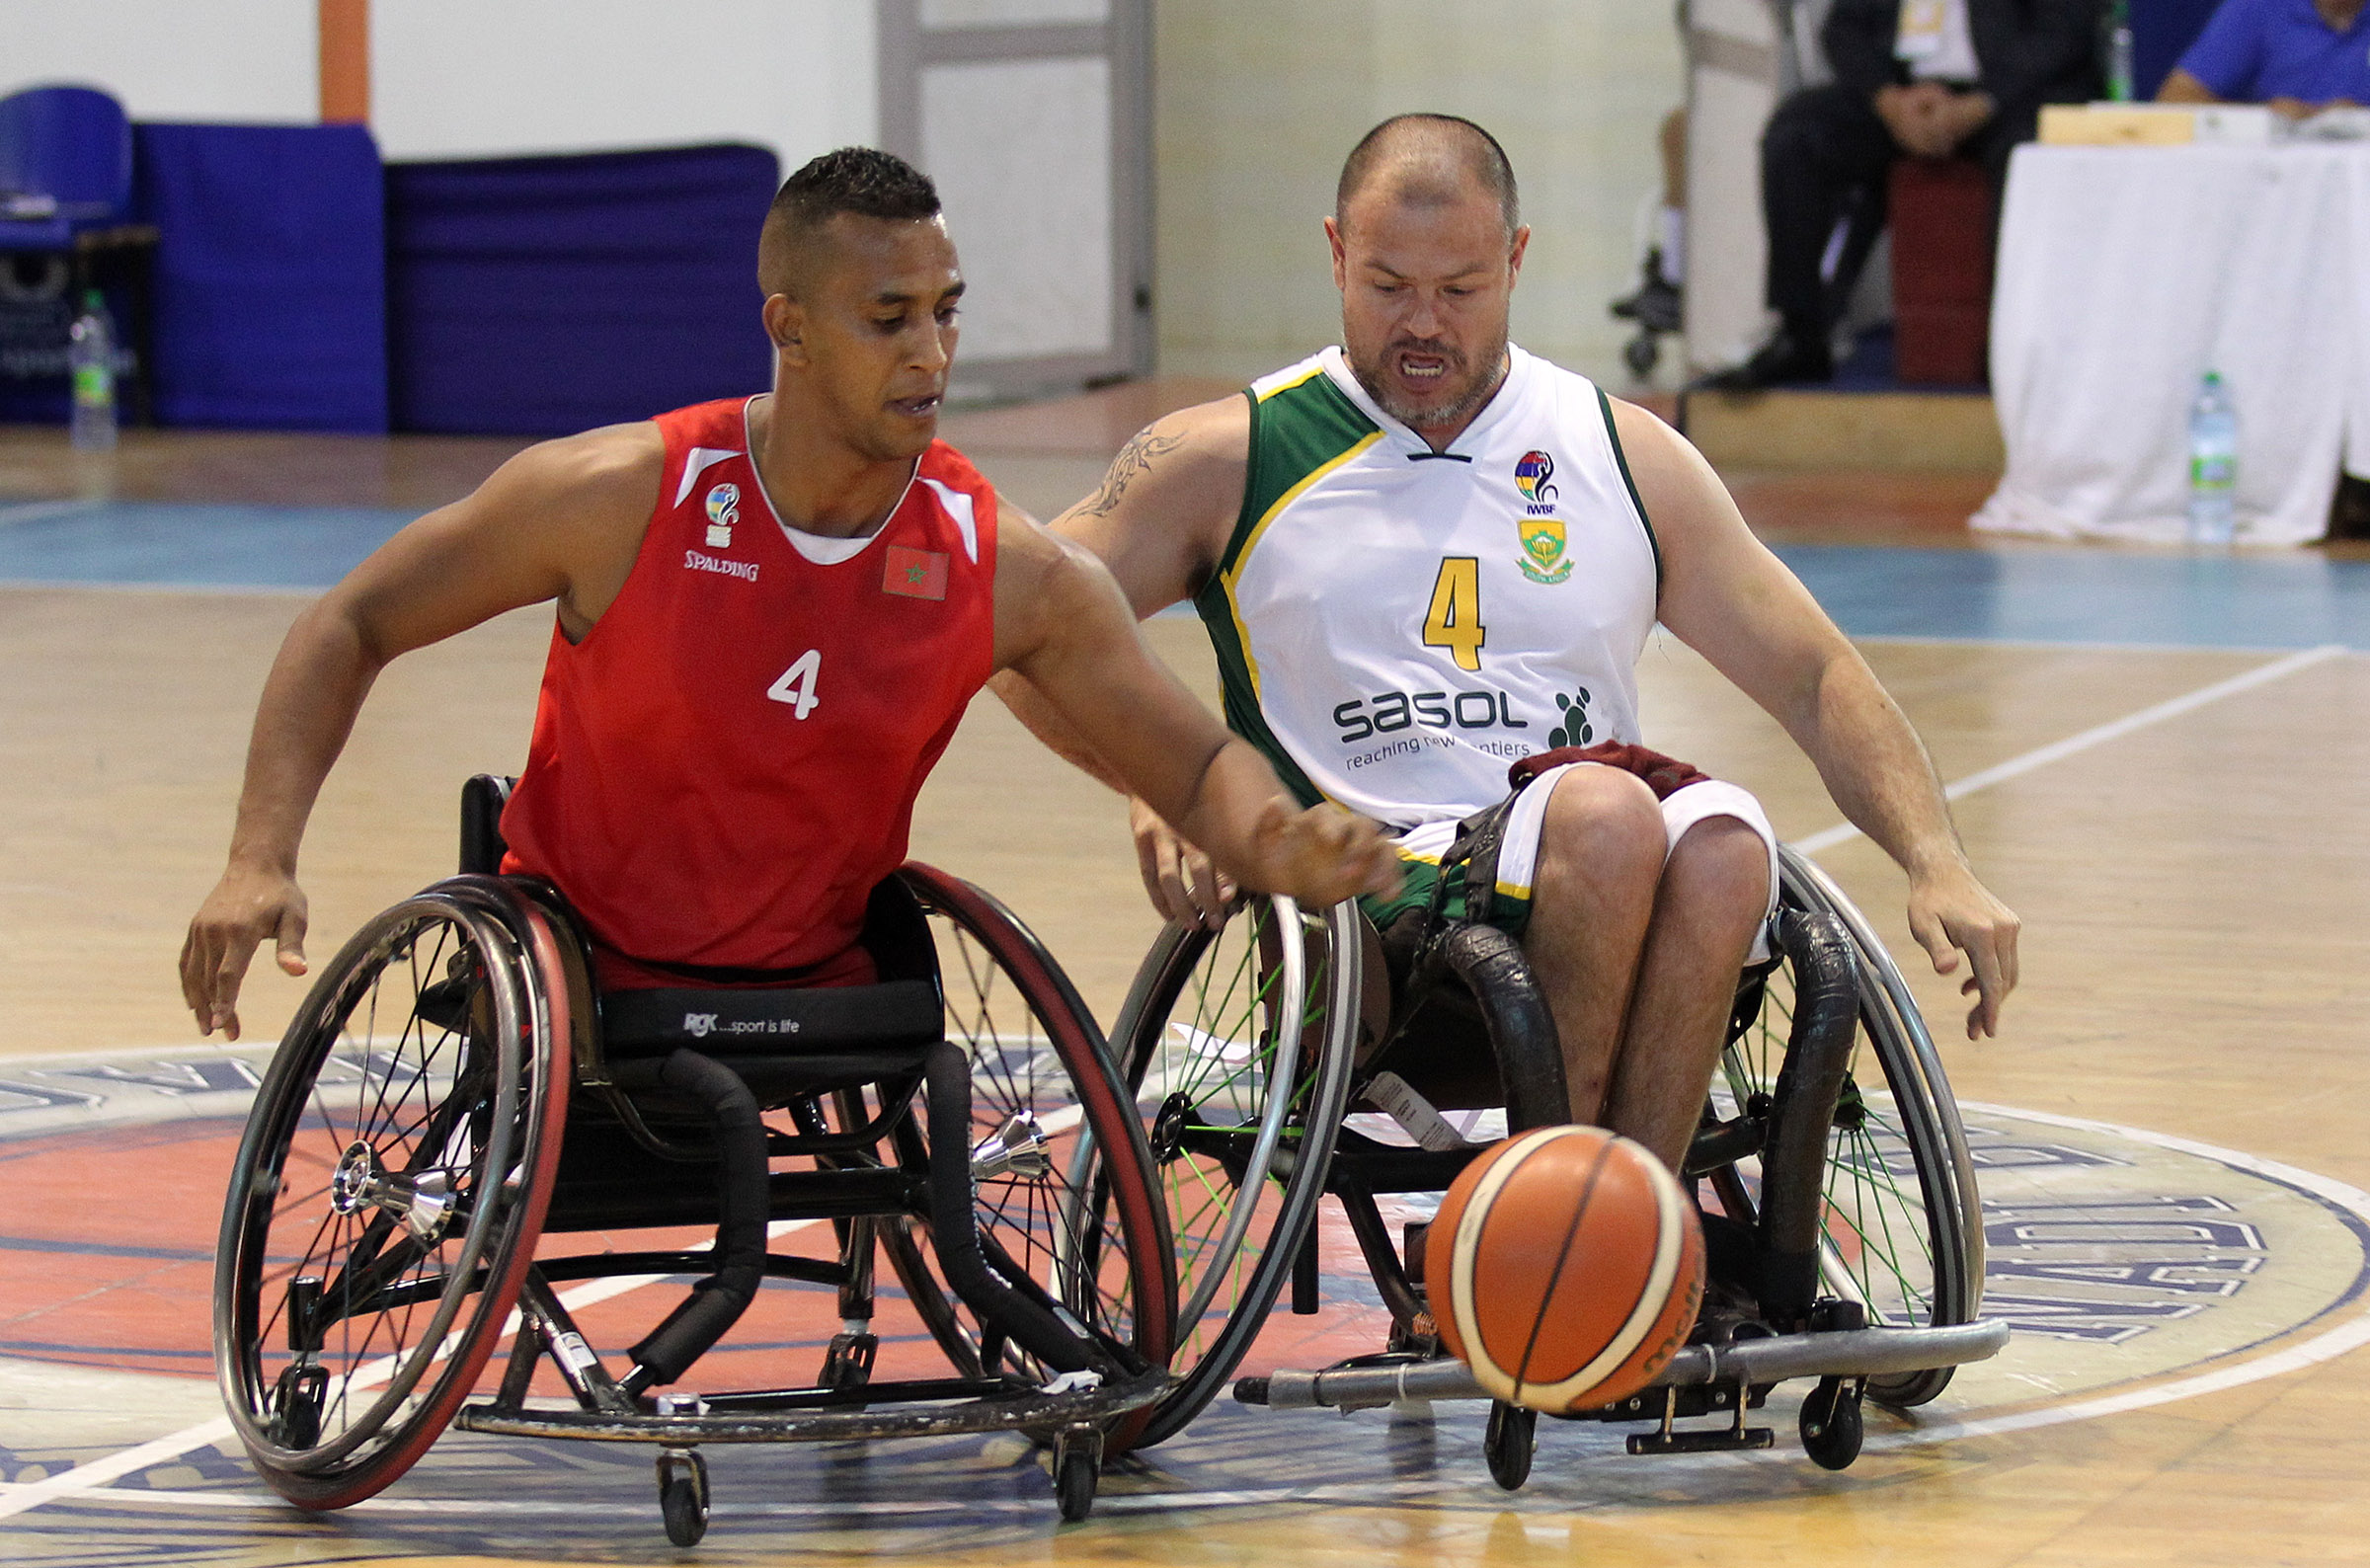 Amawheelaboys miss out on Rio after semi-final loss in Algeria